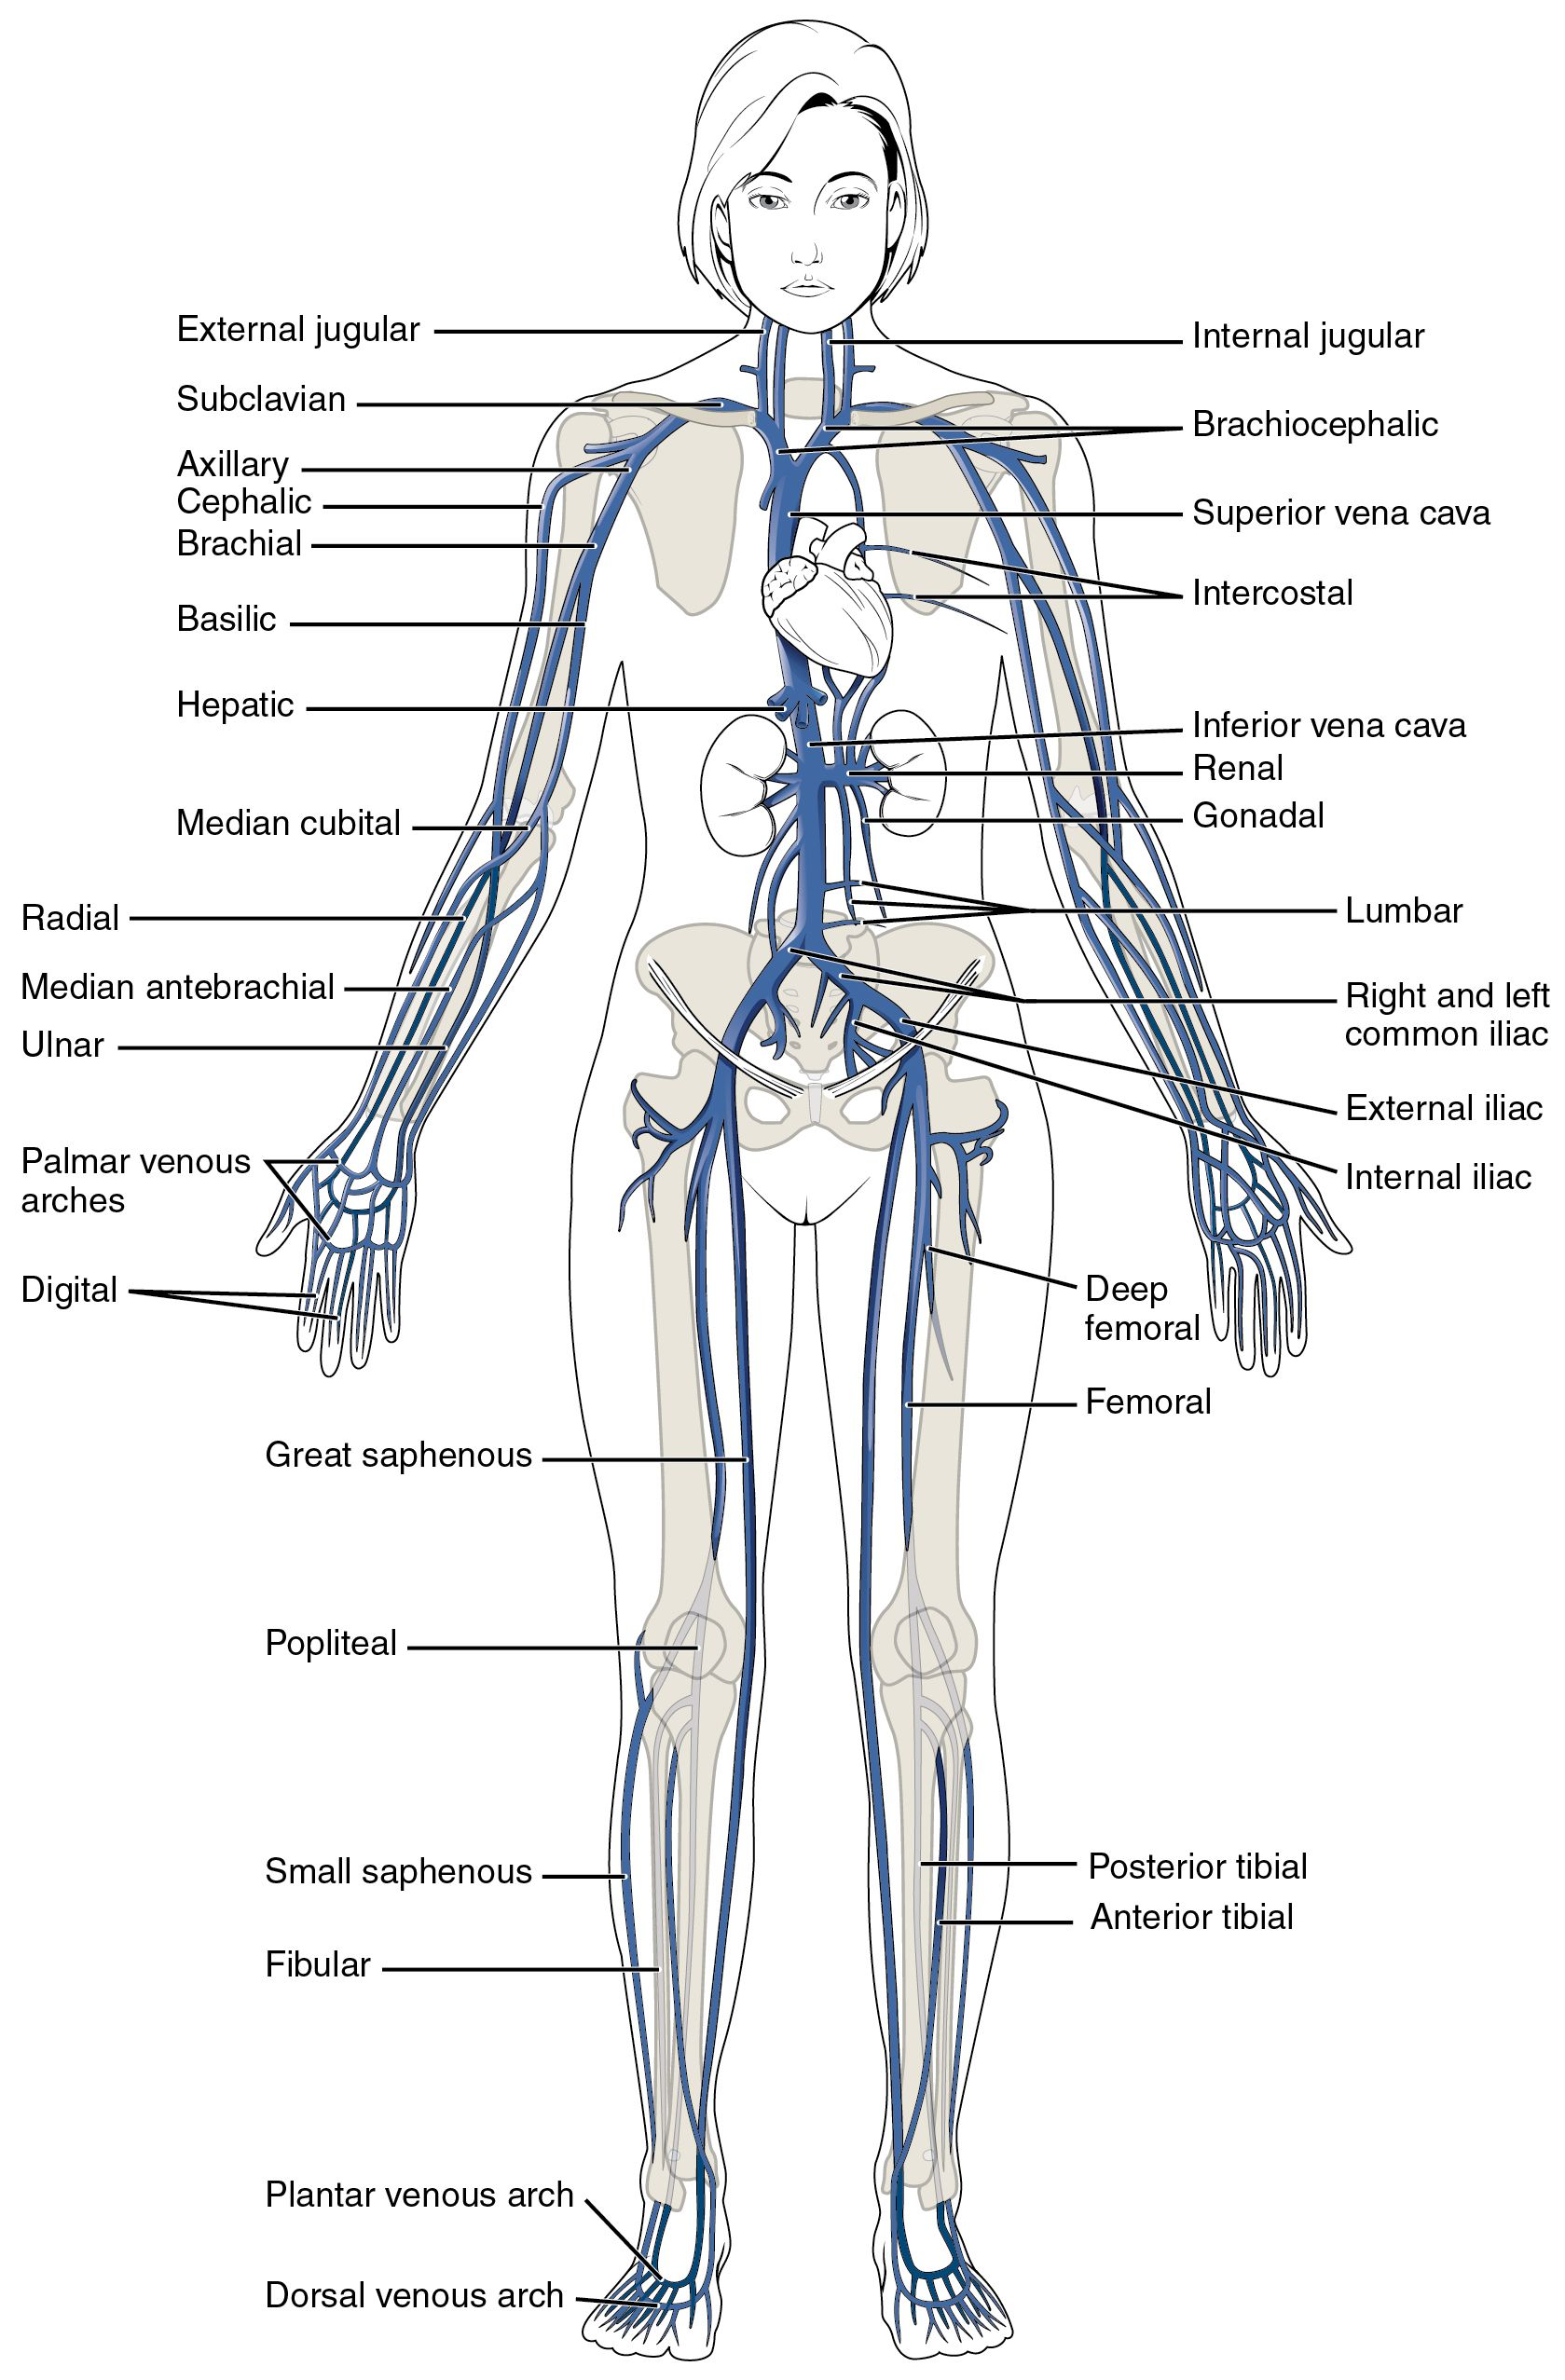 hight resolution of this diagram shows the major veins in the human body